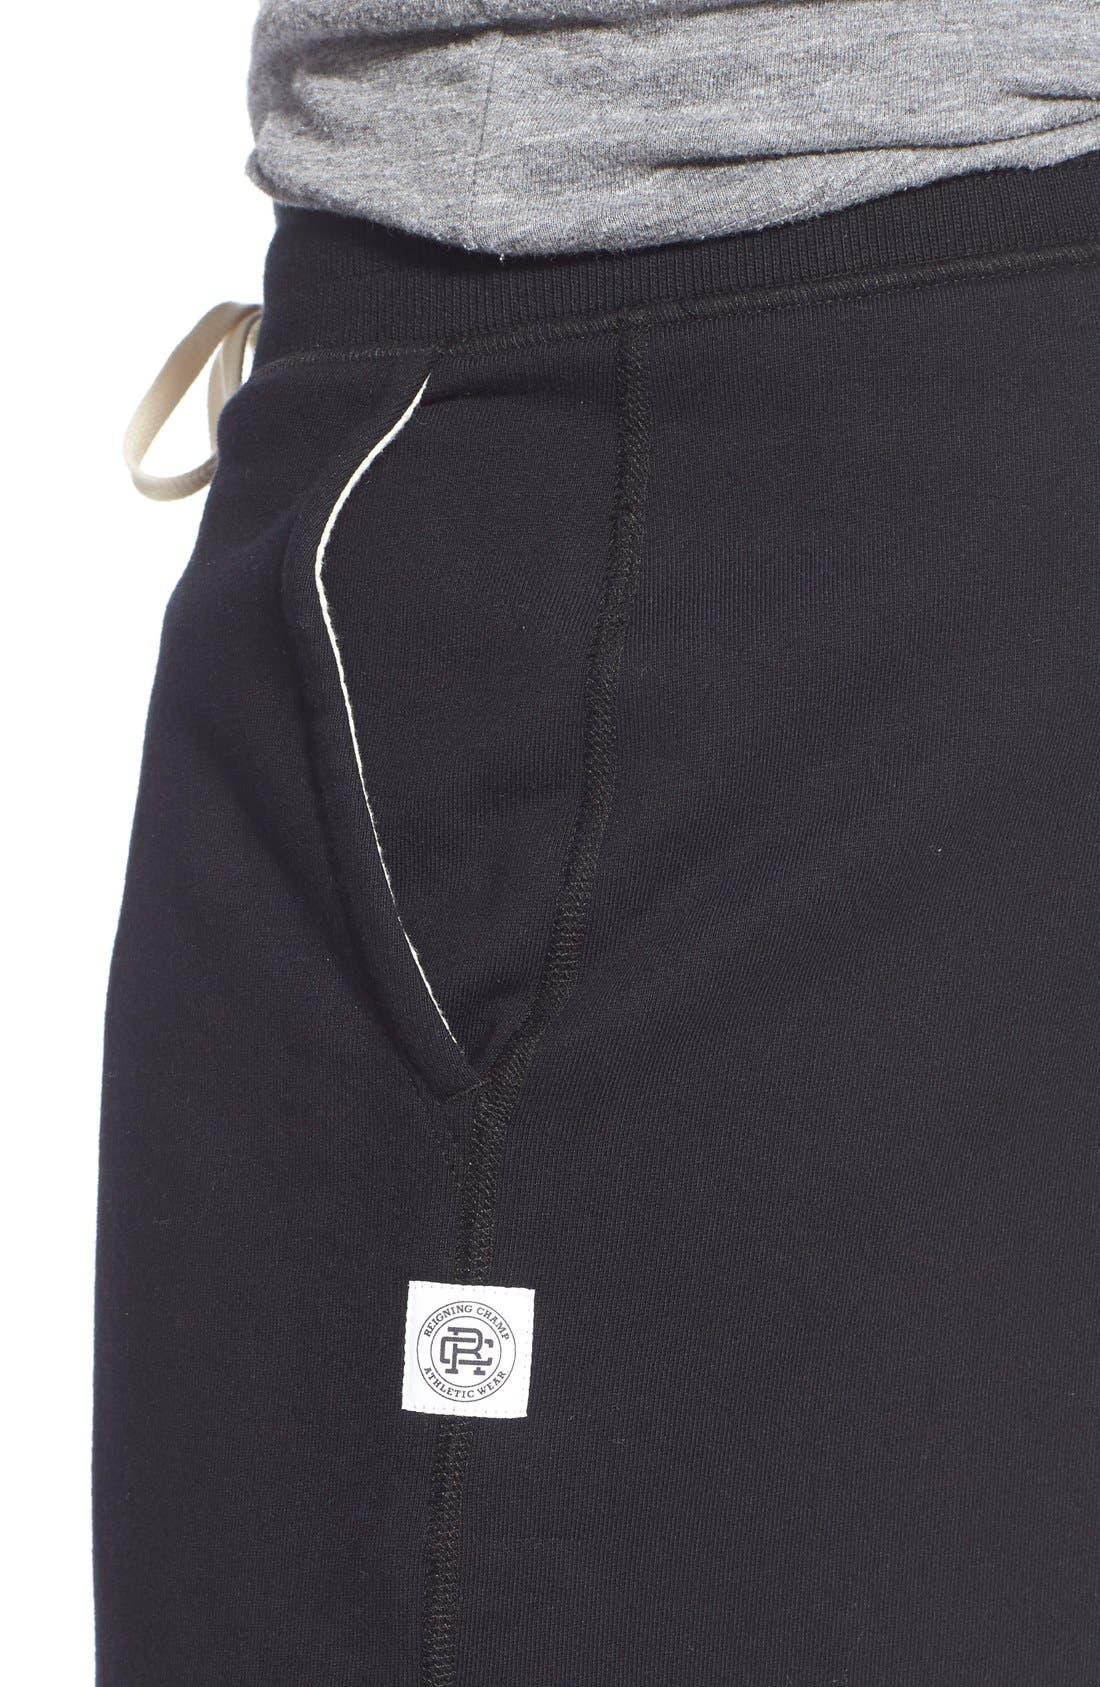 Alternate Image 4  - Reigning Champ Terry Cotton Sweat Shorts